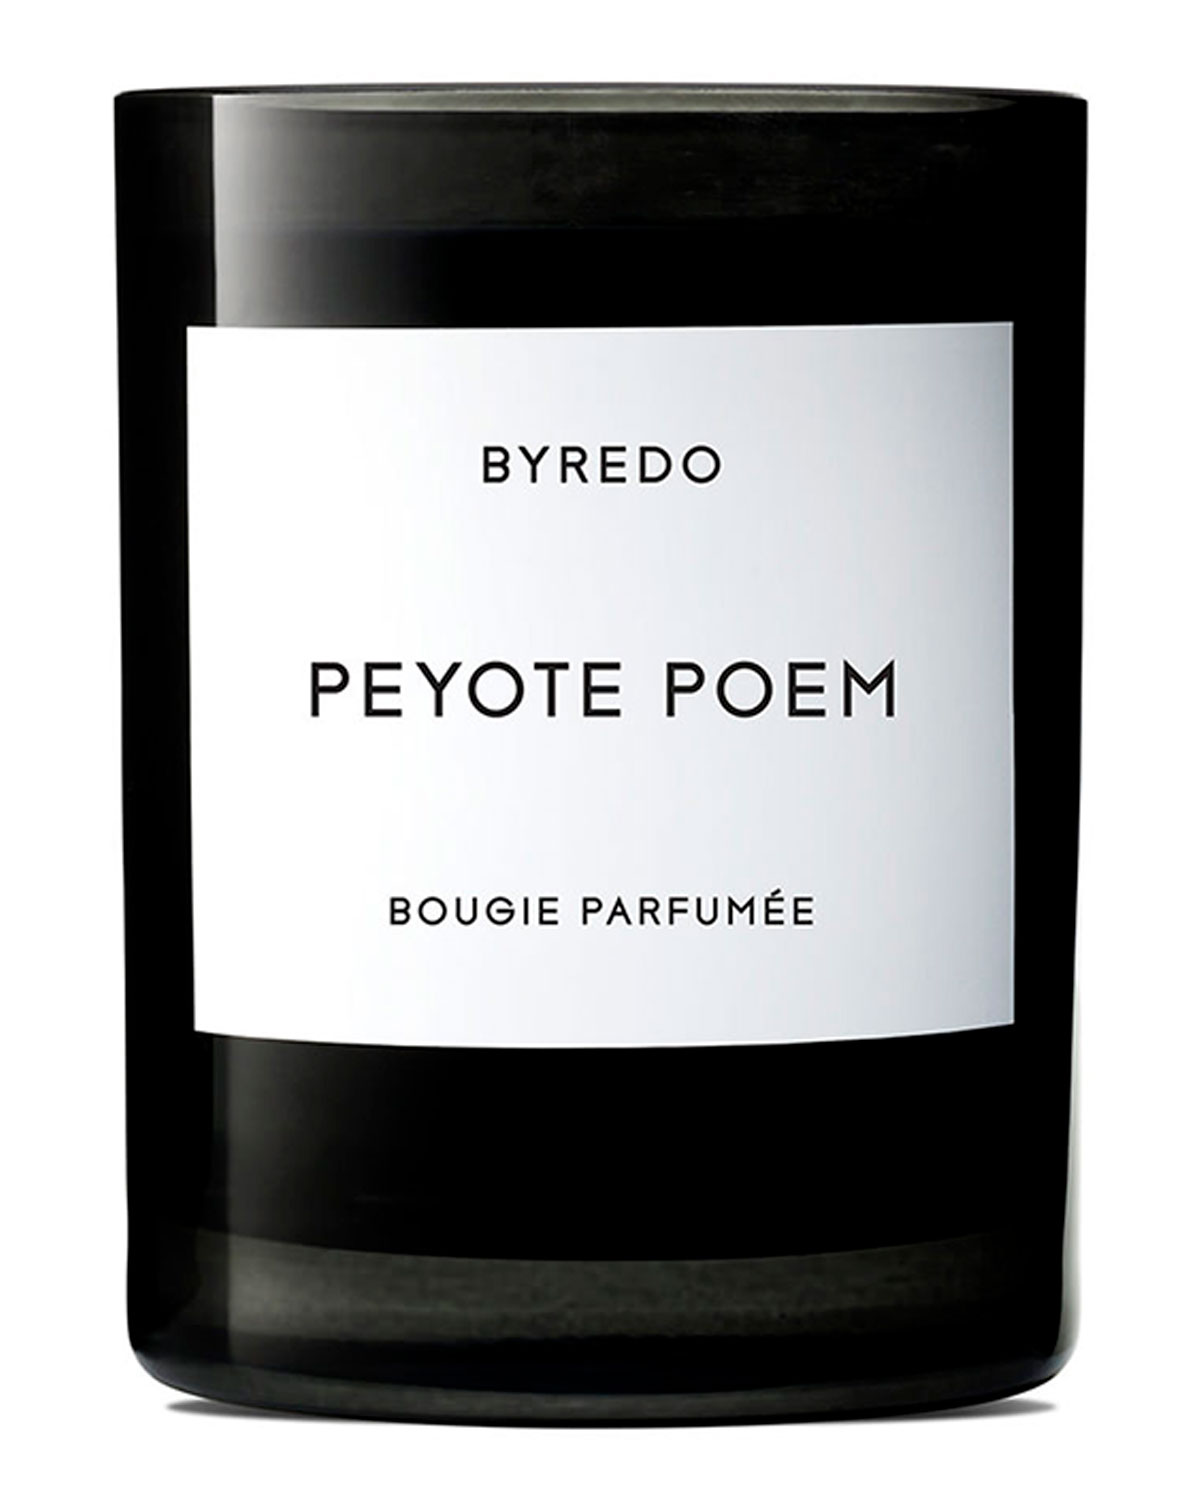 Scented Candle Neiman Marcus Natural Soy Wax Candles Moody Pack Quick Look Byredo Peyote Poem Bougie Parfumee